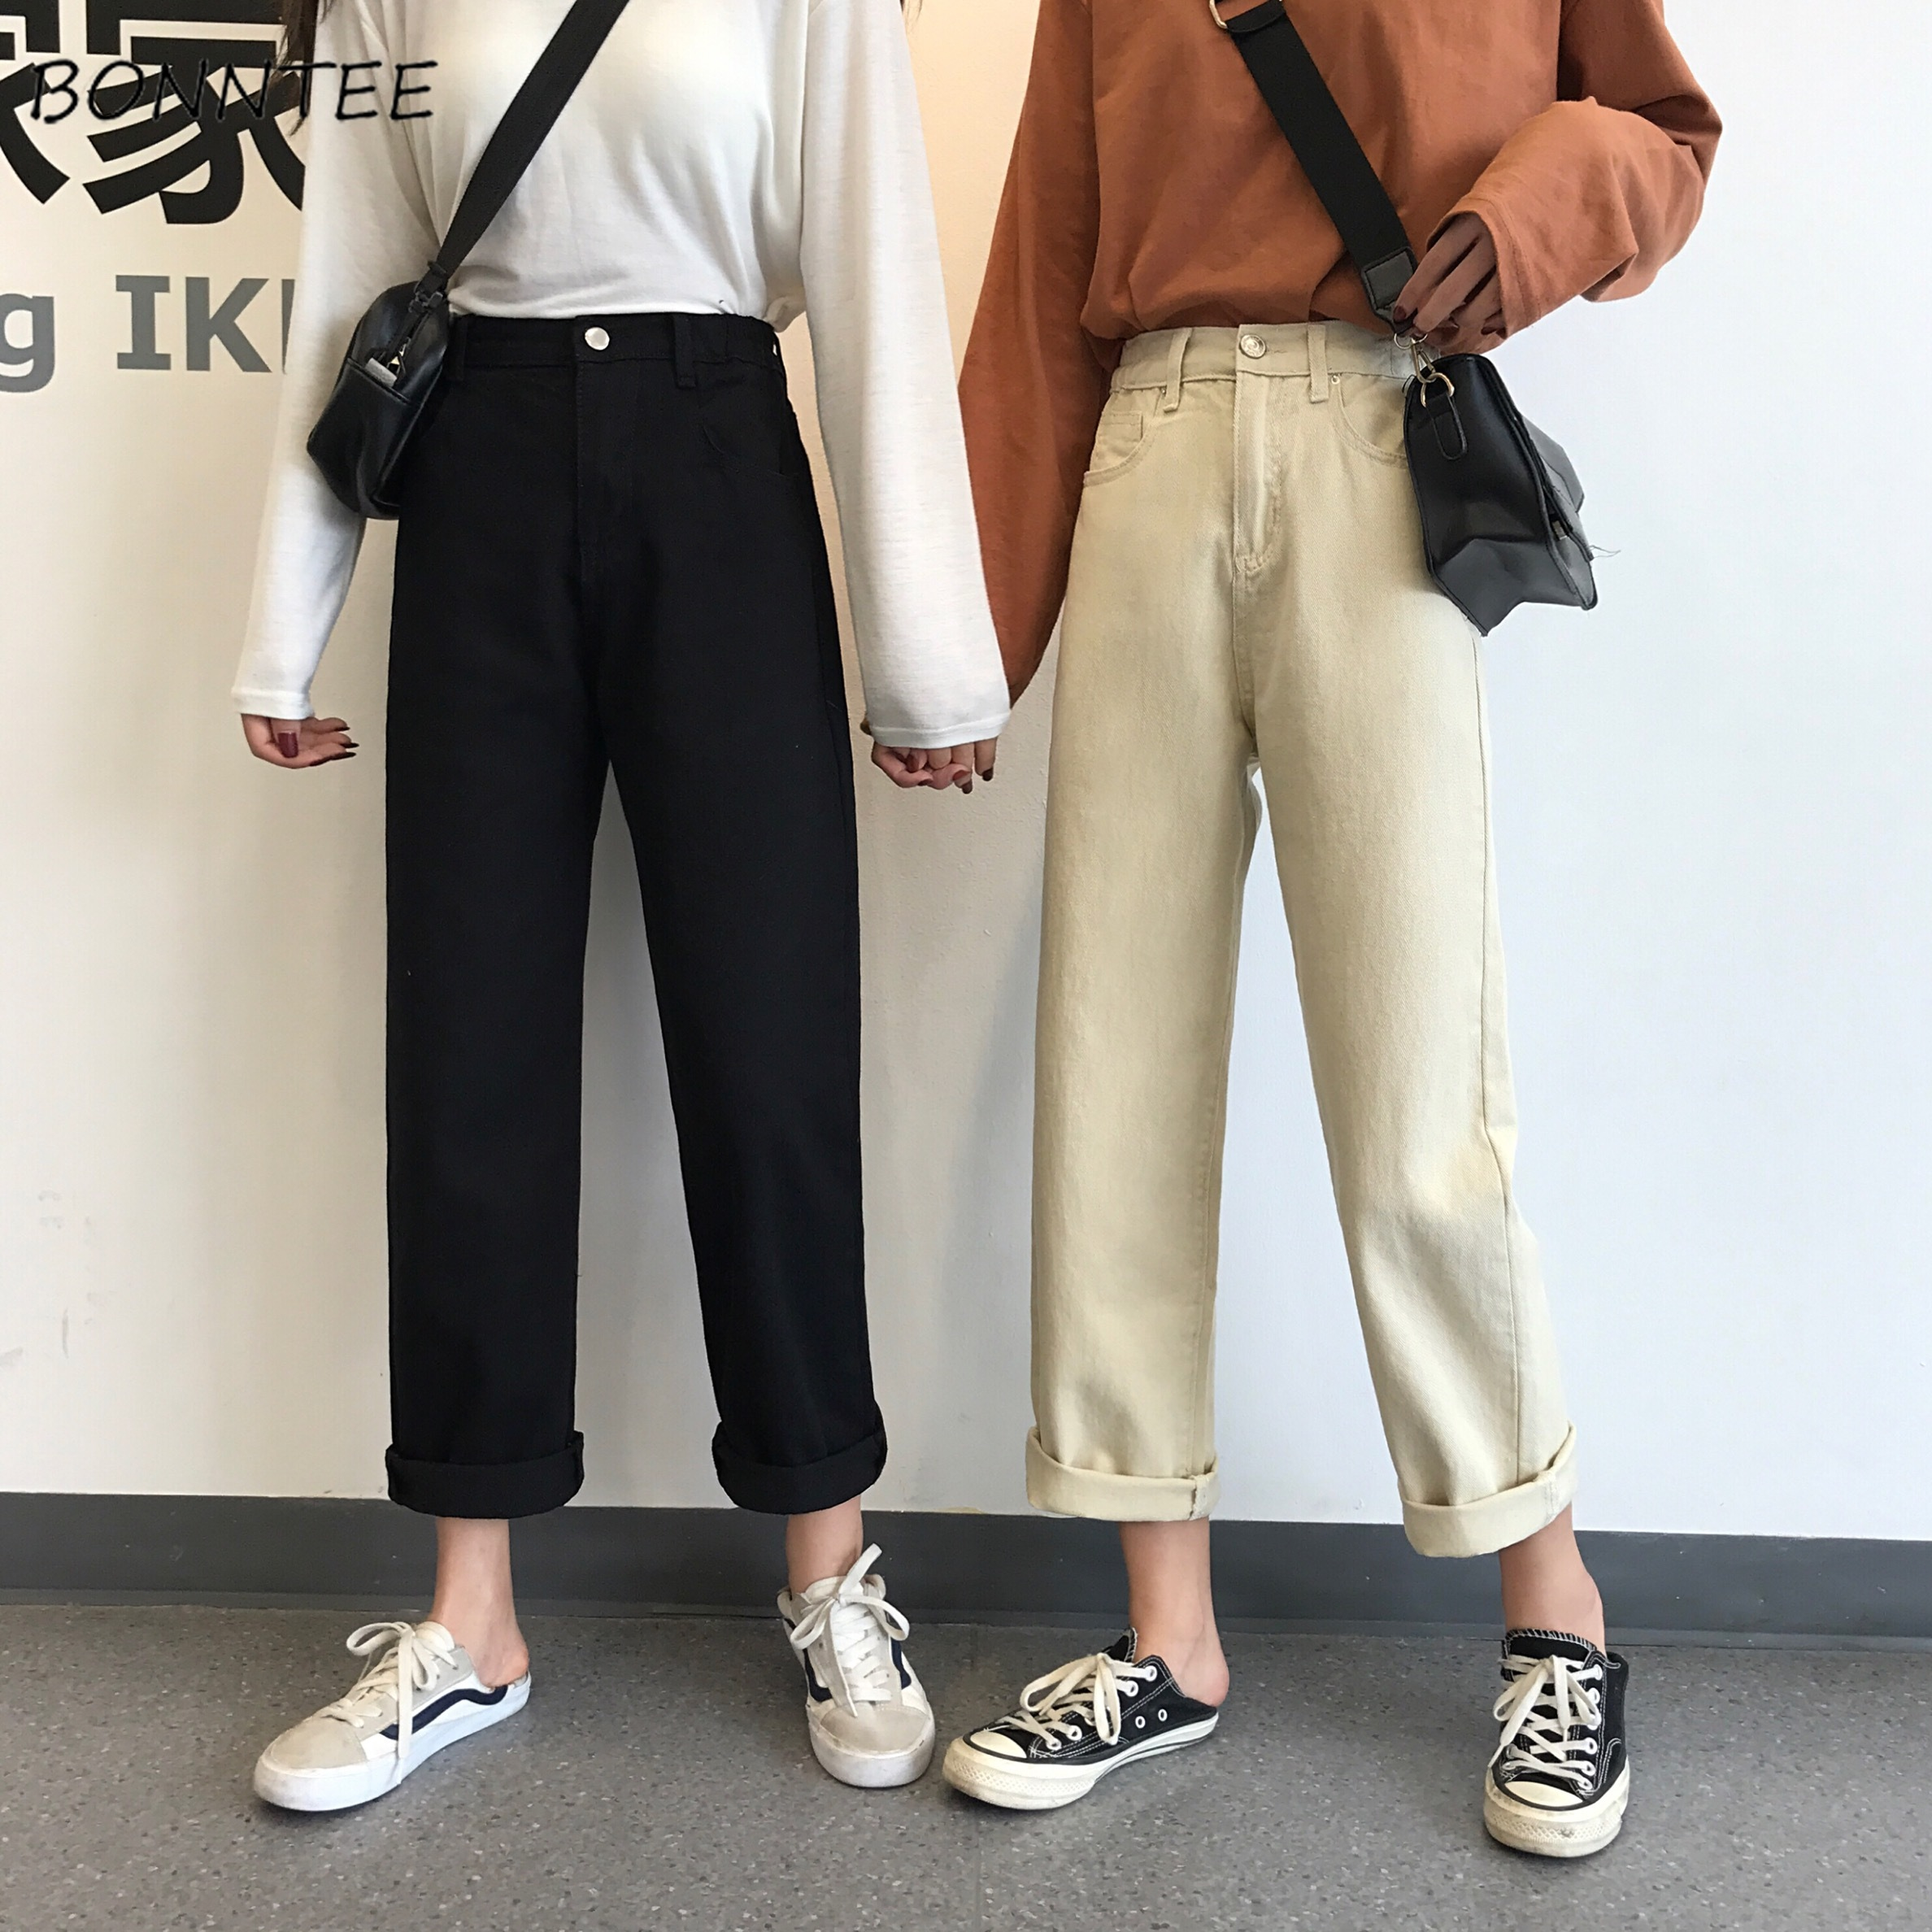 Jeans Women Solid Ankle-length Korean Style Simple All-match Student BF Streetwear Ulzzang Womens Denim Trousers Fashion Casual